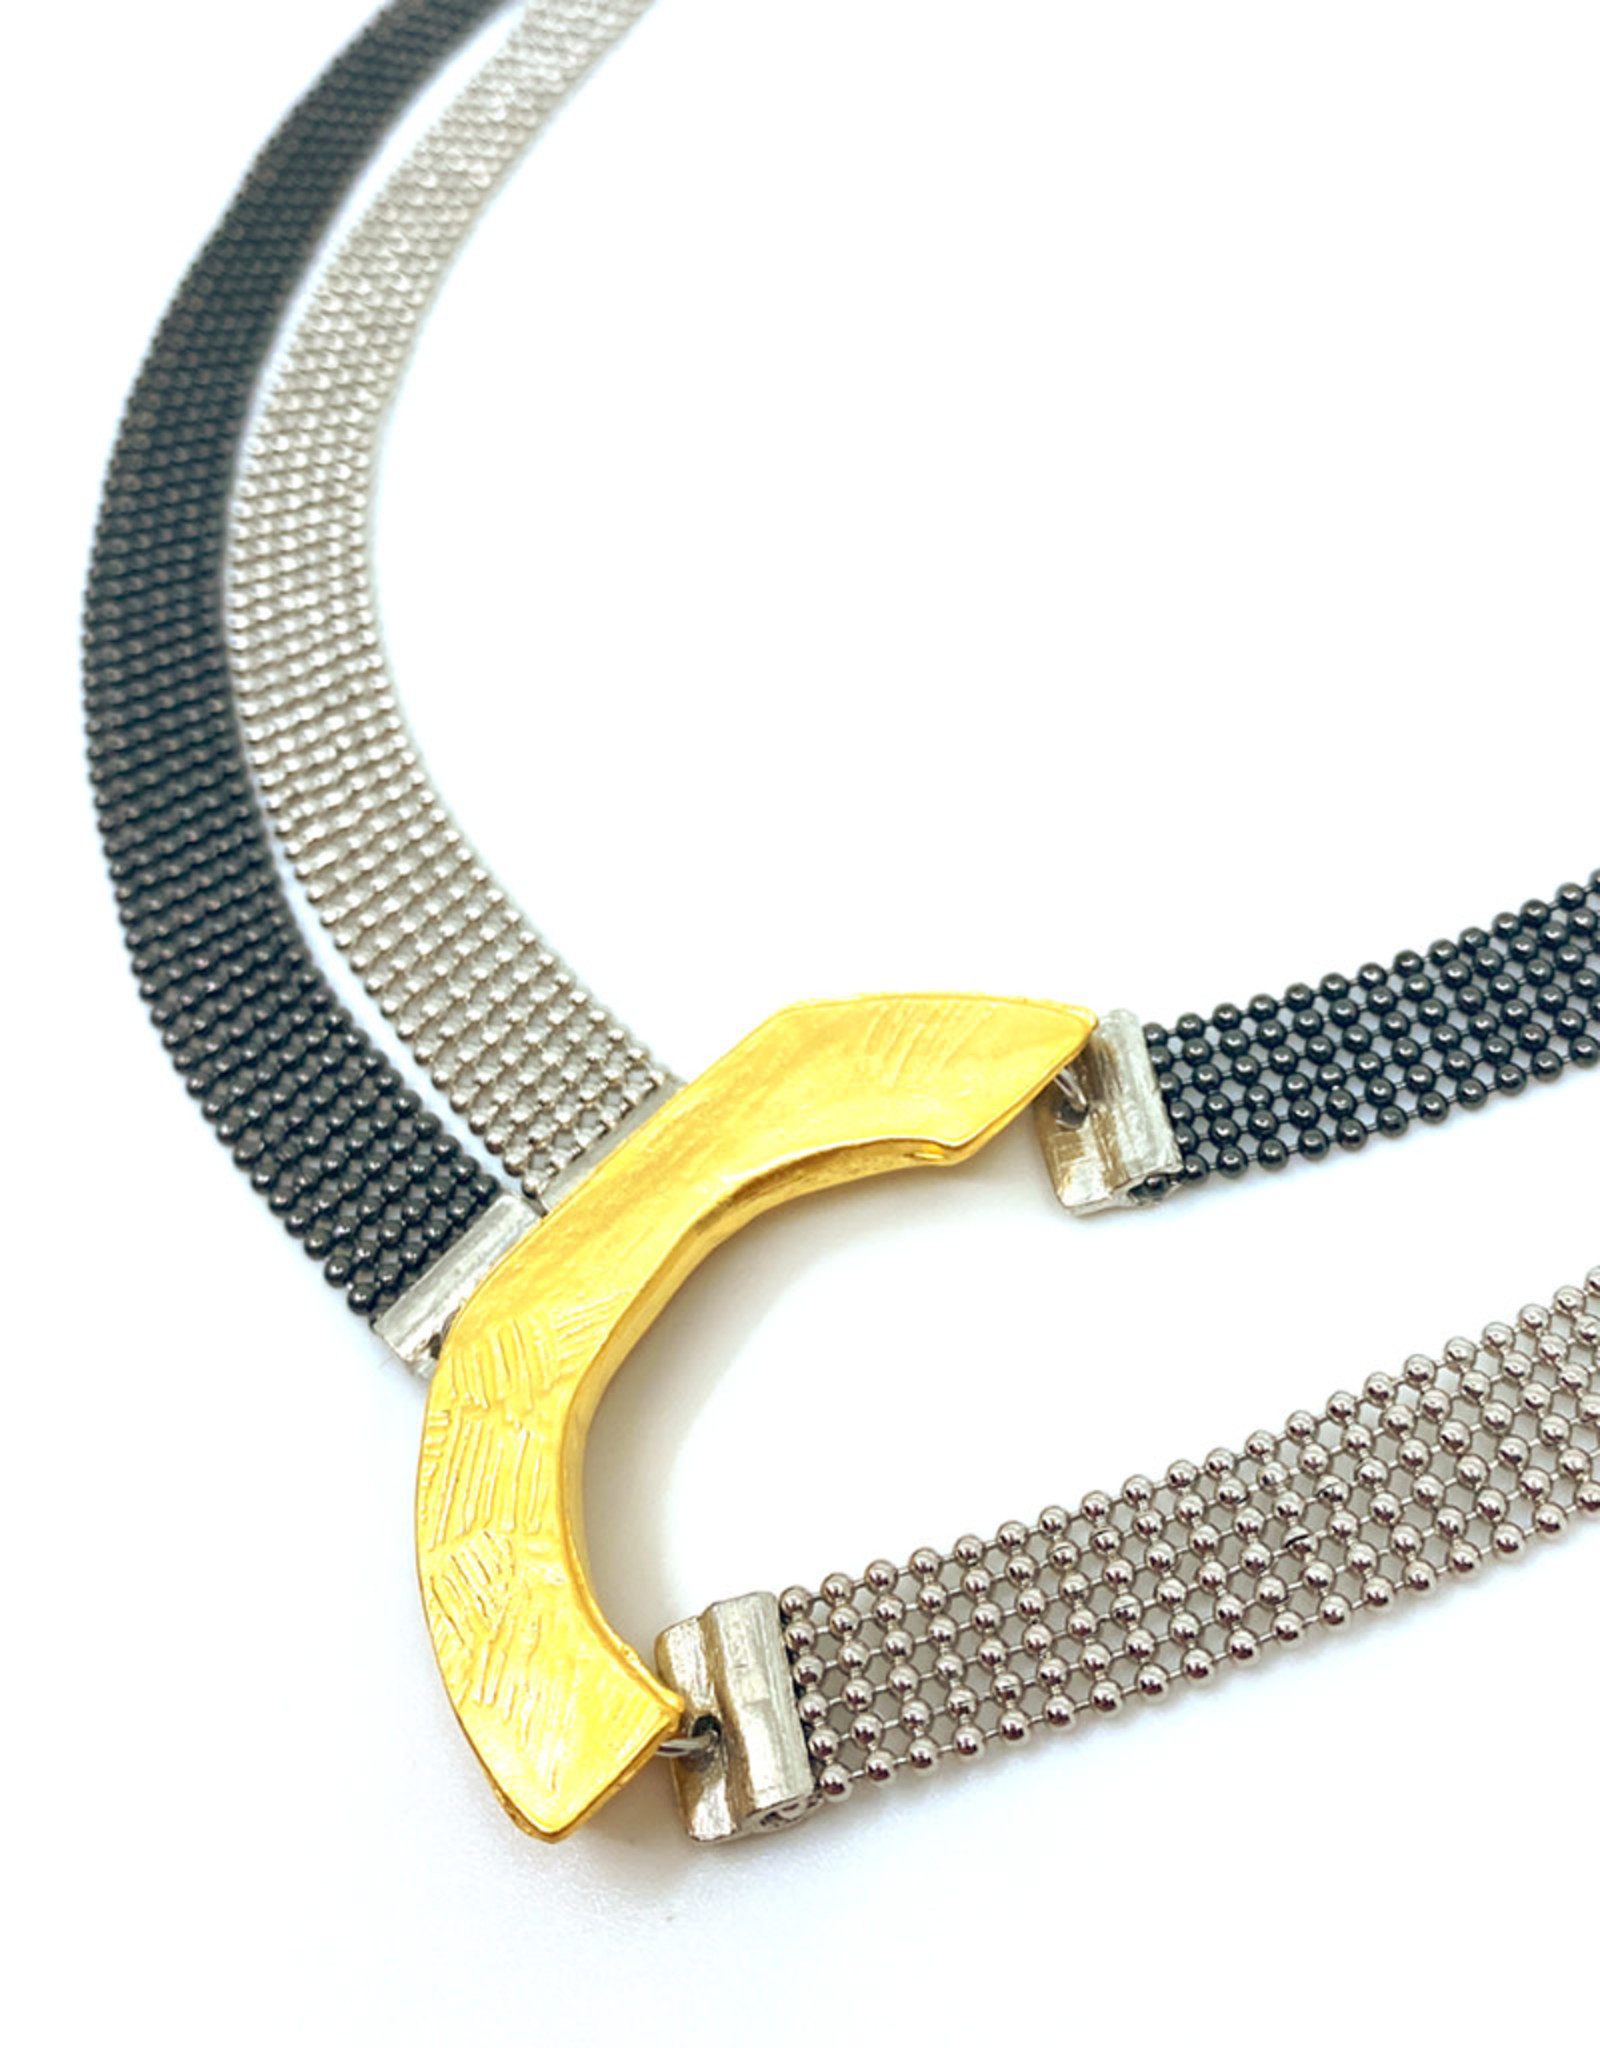 ANNE-MARIE CHAGNON ADENIA NECKLACE